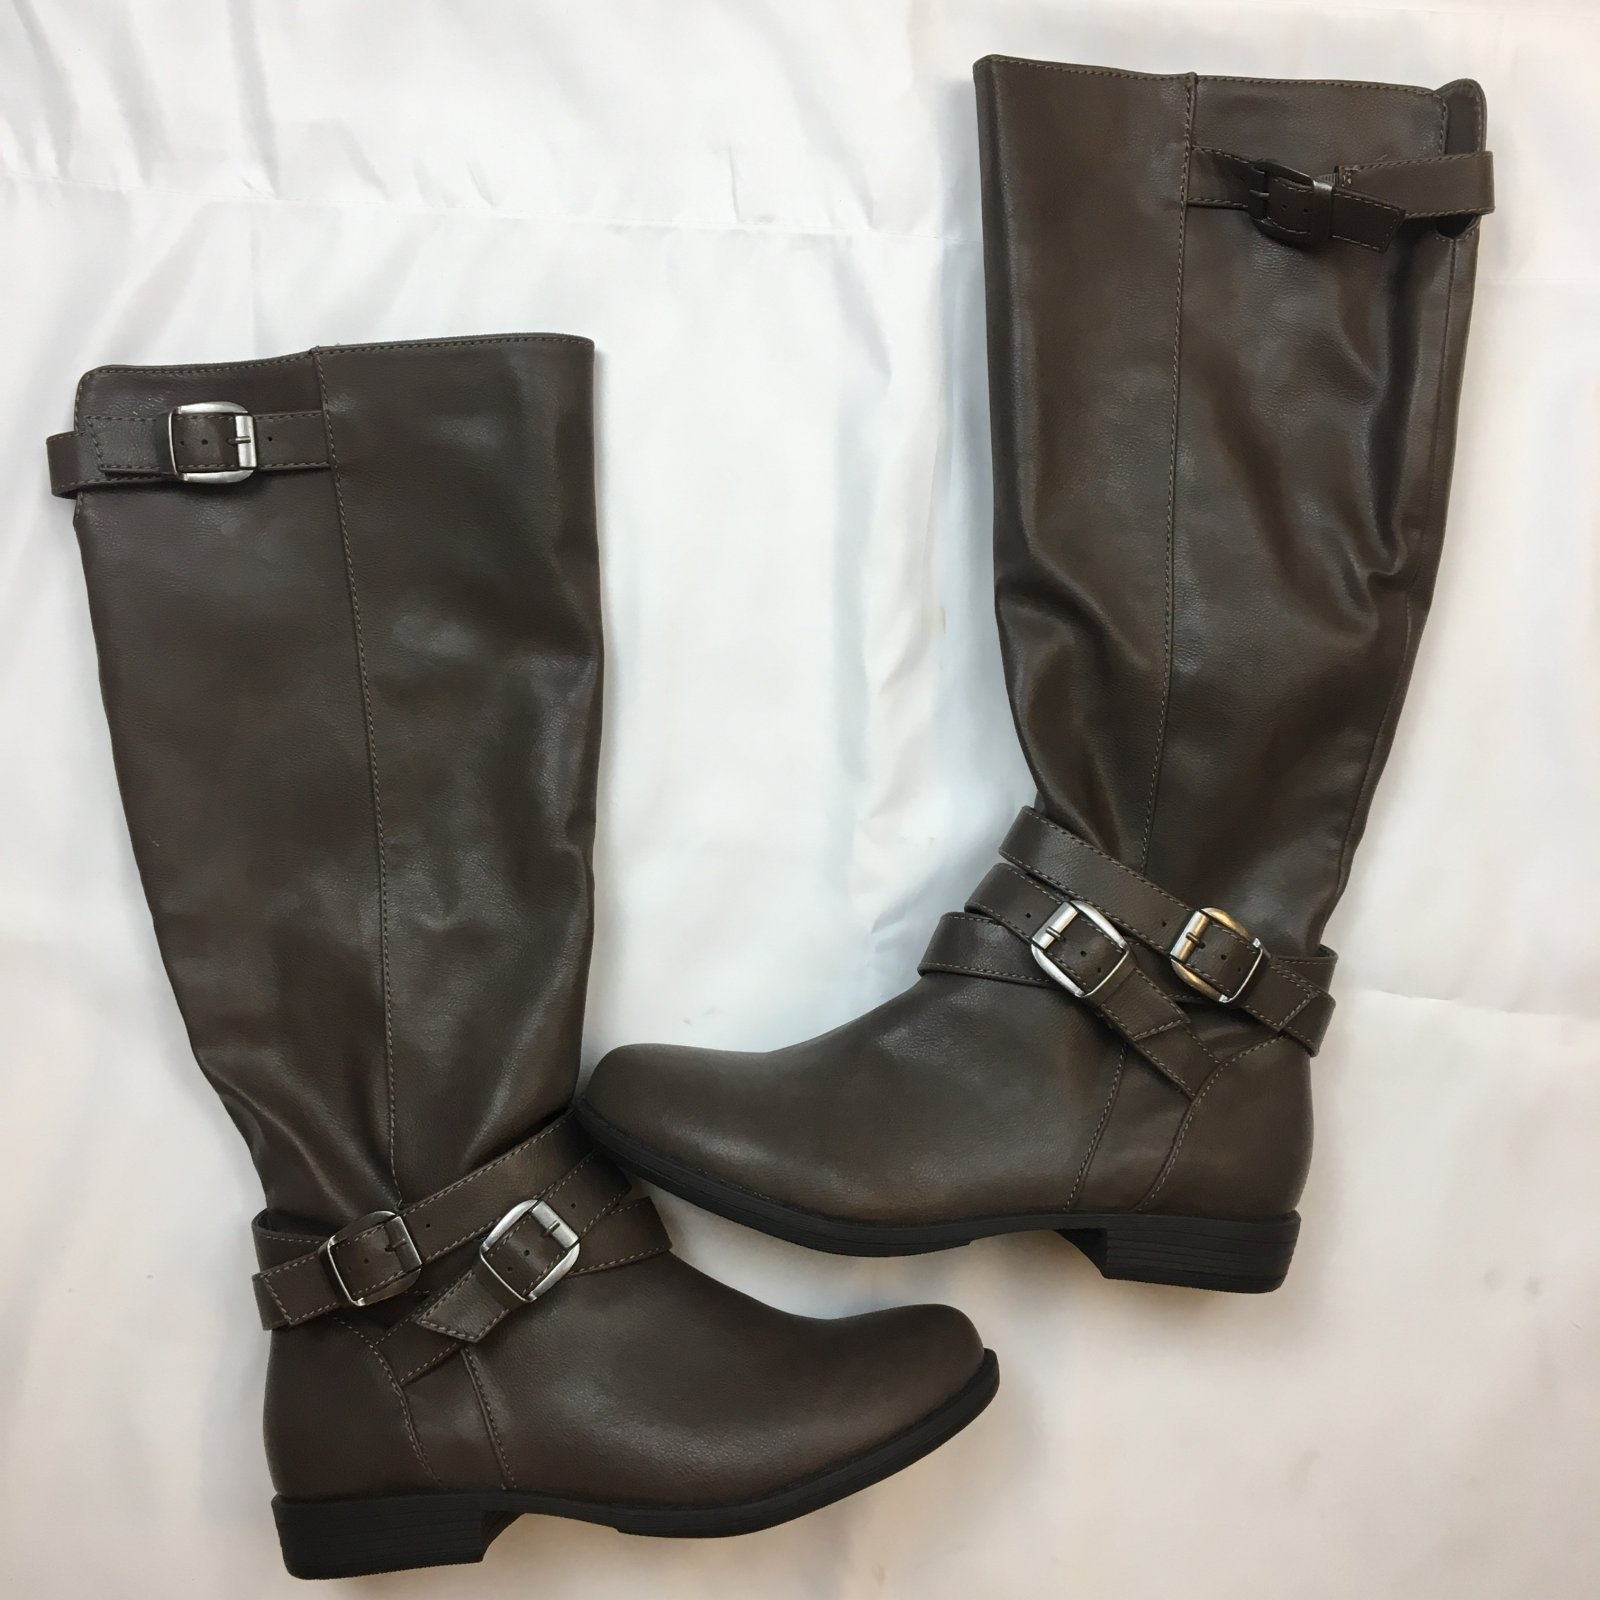 Wrap strap tall boot